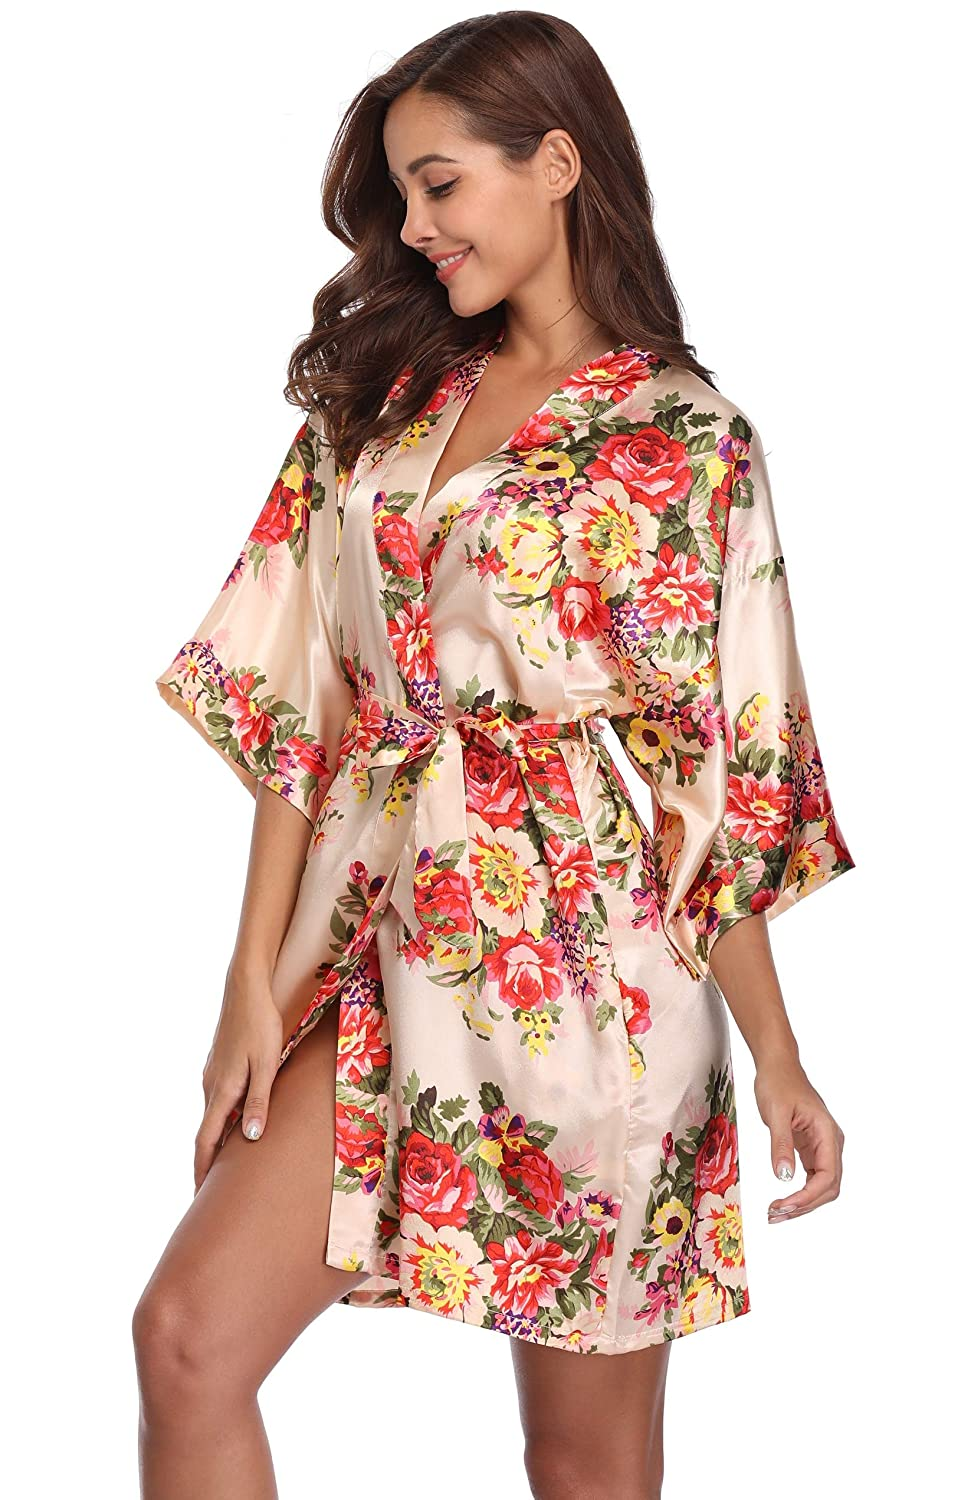 Champagne MASELEY Women's Floral Satin Kimono Short Style Bridesmaids Robes with Pockets for Wedding Party